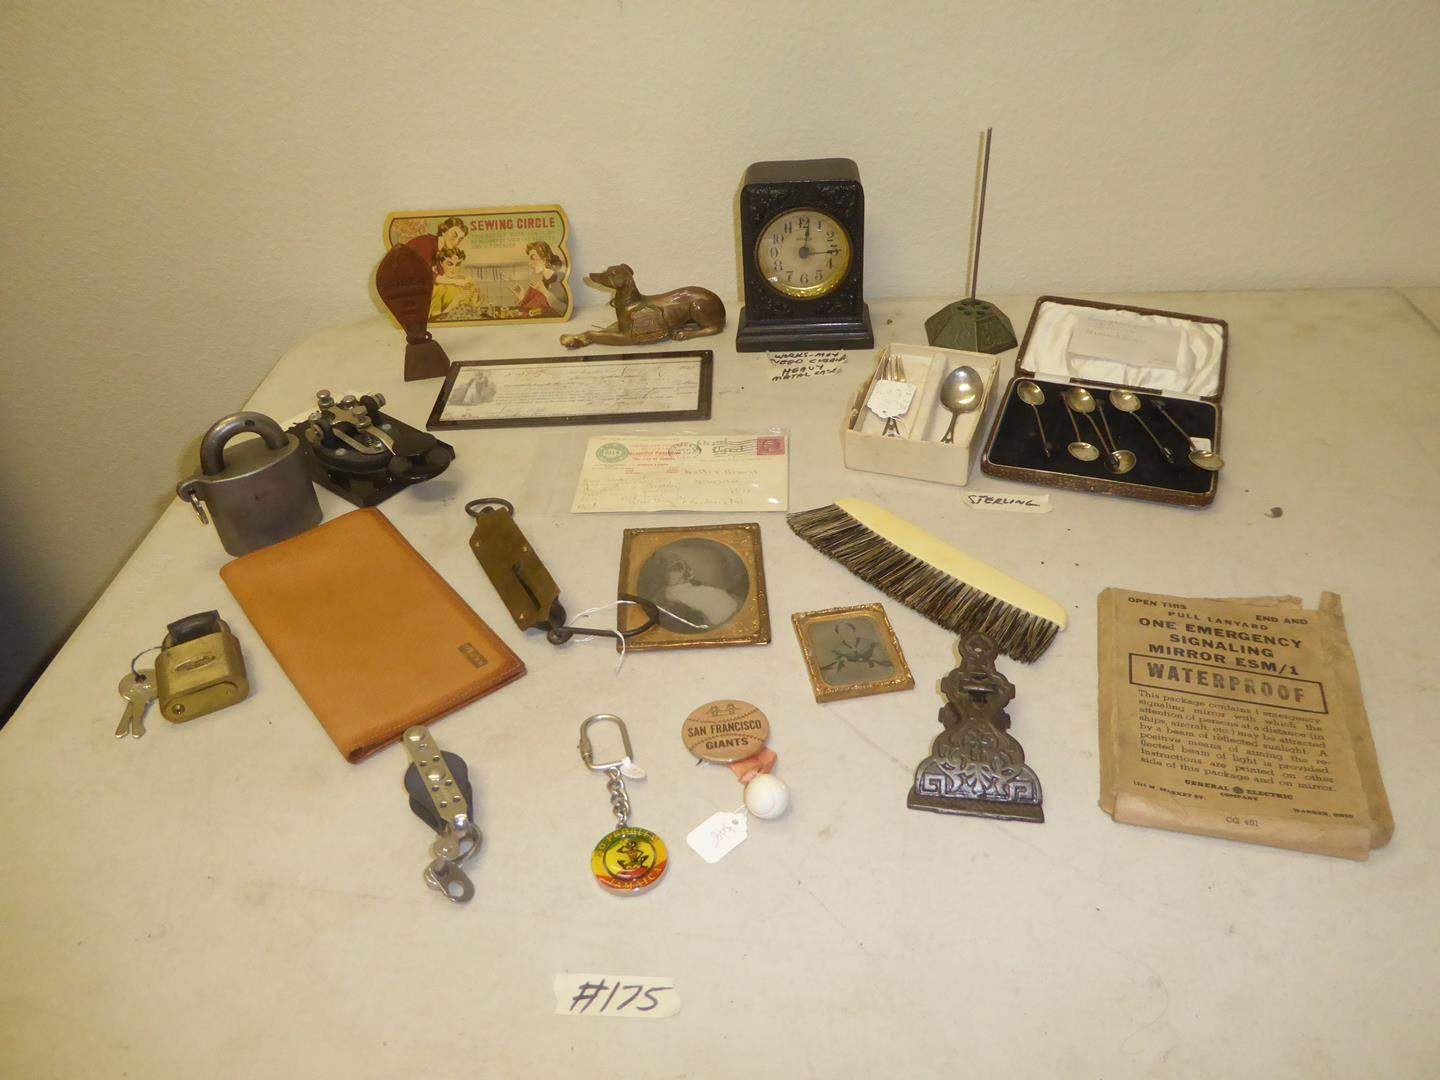 Lot # 175 - Emergency Signaling Mirror, Sterling Silver Spoons, Daguerreotypes, Westclox Alarm Clock & More Vintage Items (main image)